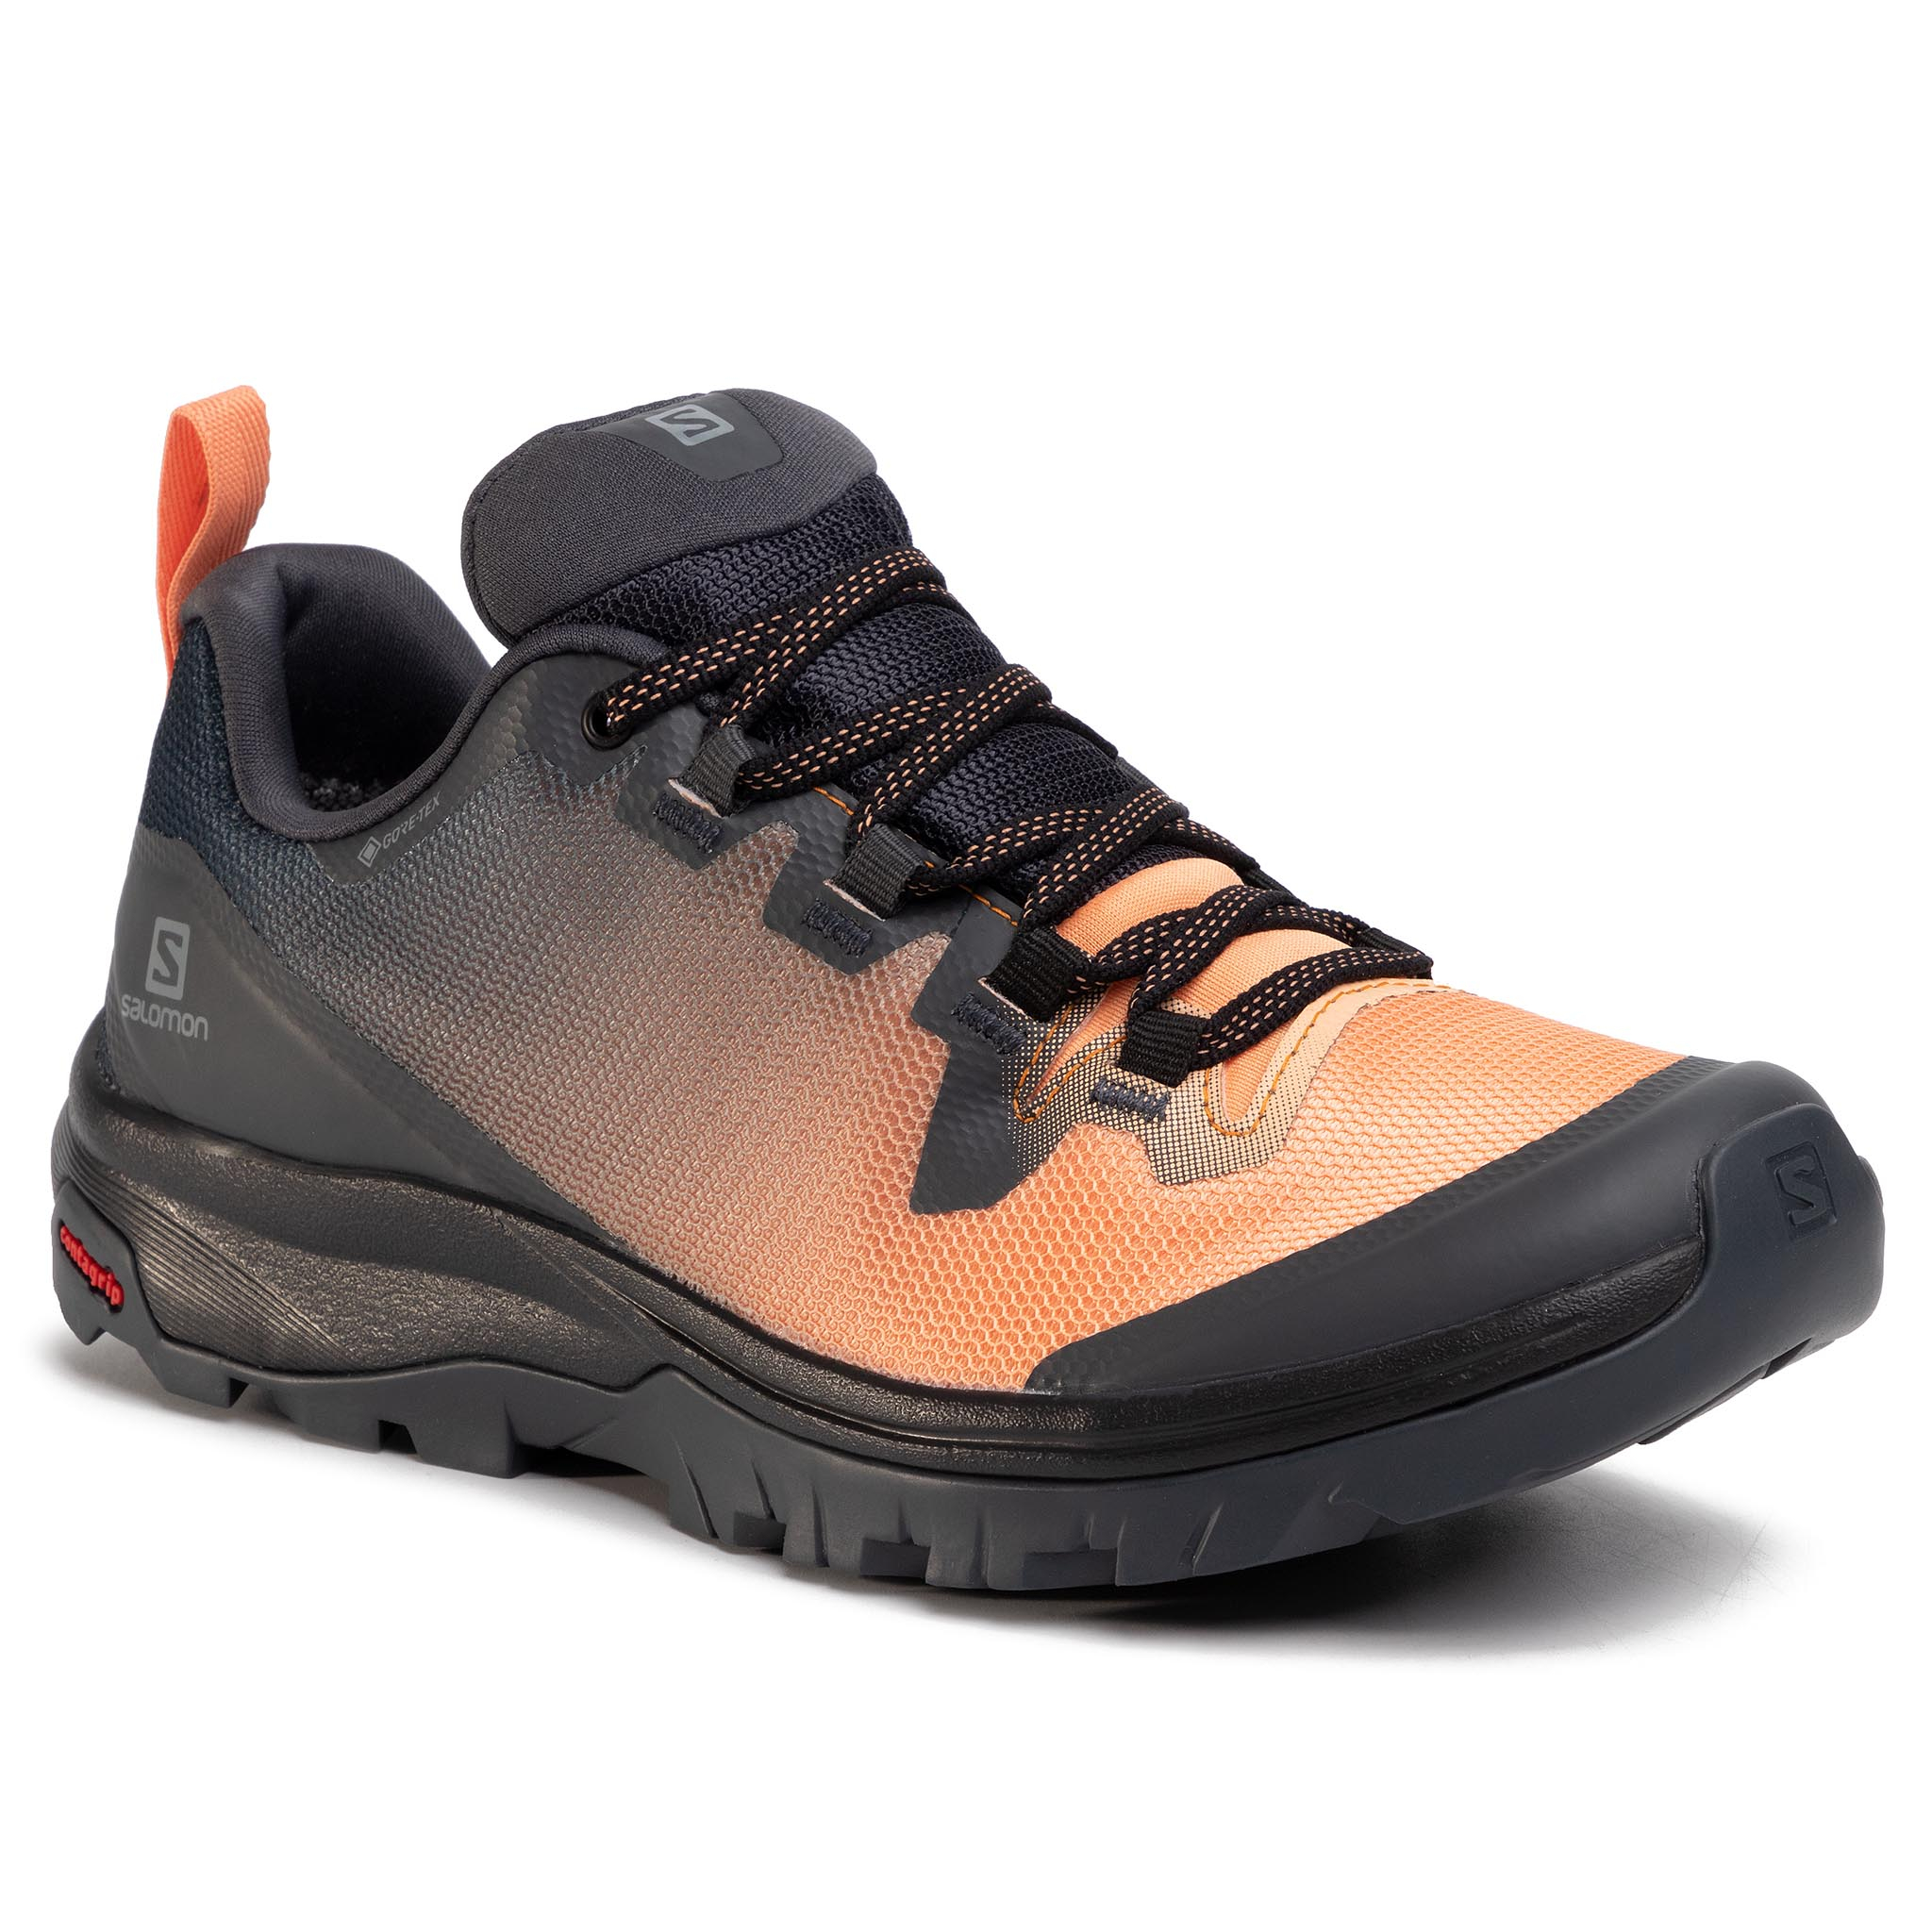 Trekkings Salomon - Vaya Gtx Gore-Tex 409897 20 V0 Ebony/Cantaloupe/Black imagine epantofi.ro 2021